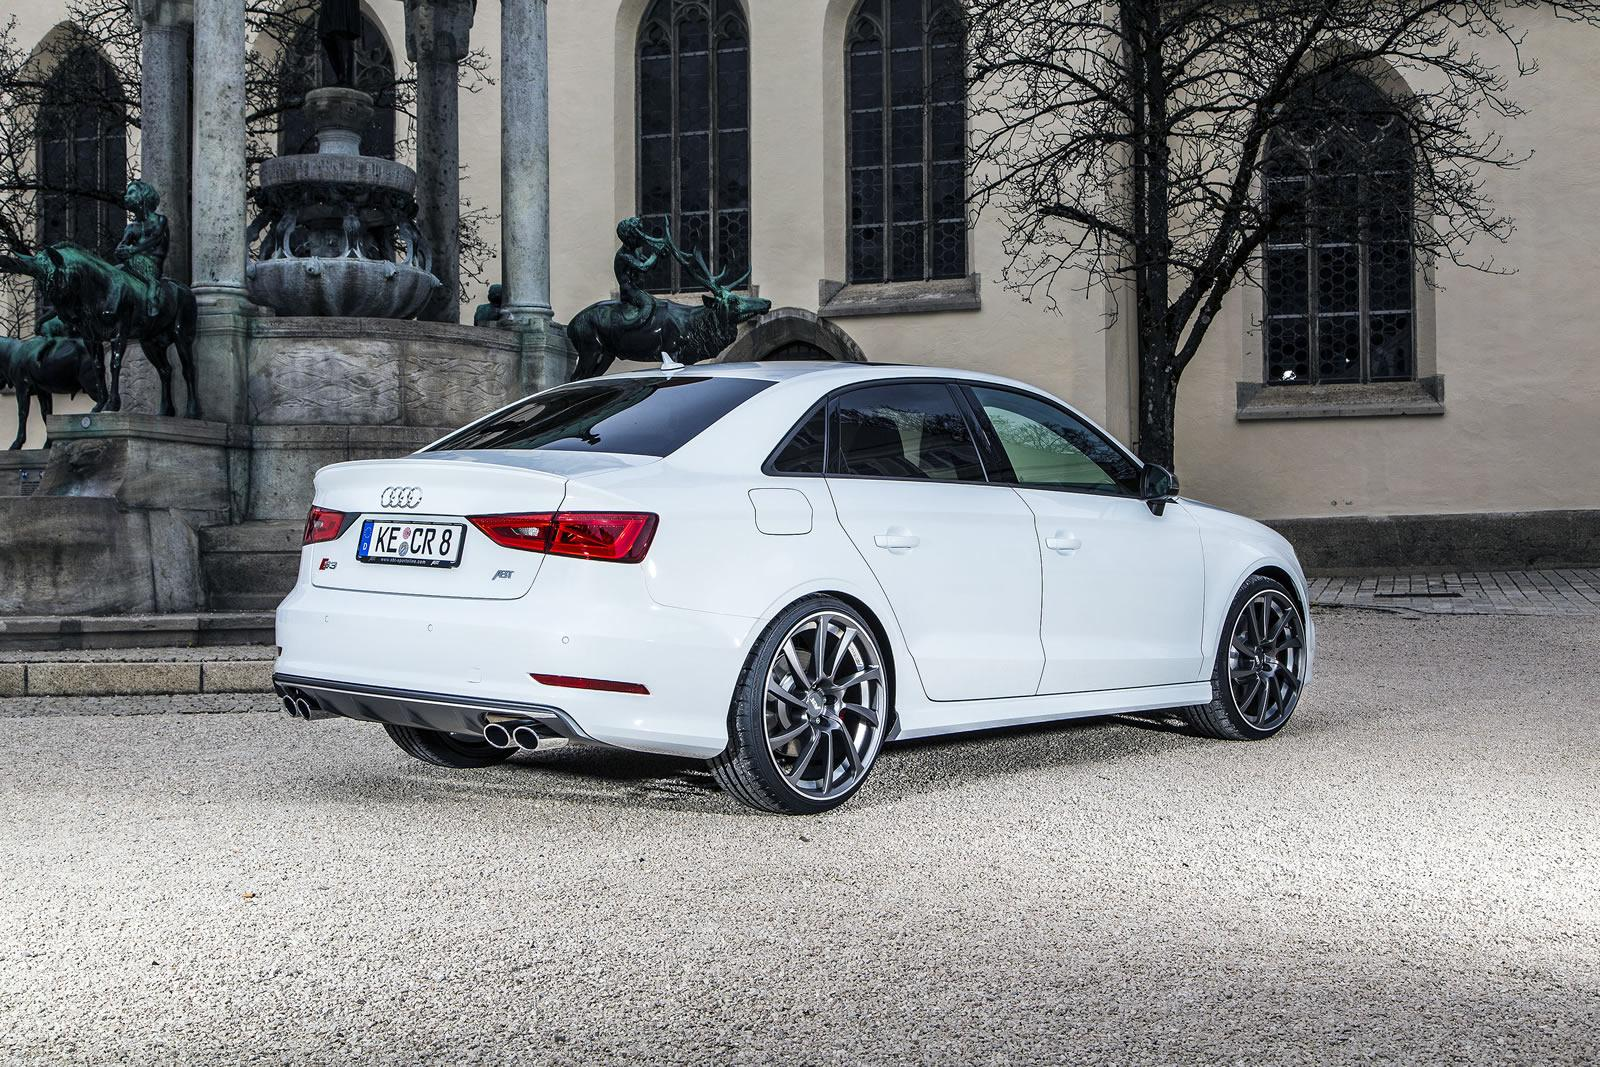 Audi A3 Car Mats >> Audi Tuning: ABT-tuned S3 Sedan does 0-100km/h in 4.5s